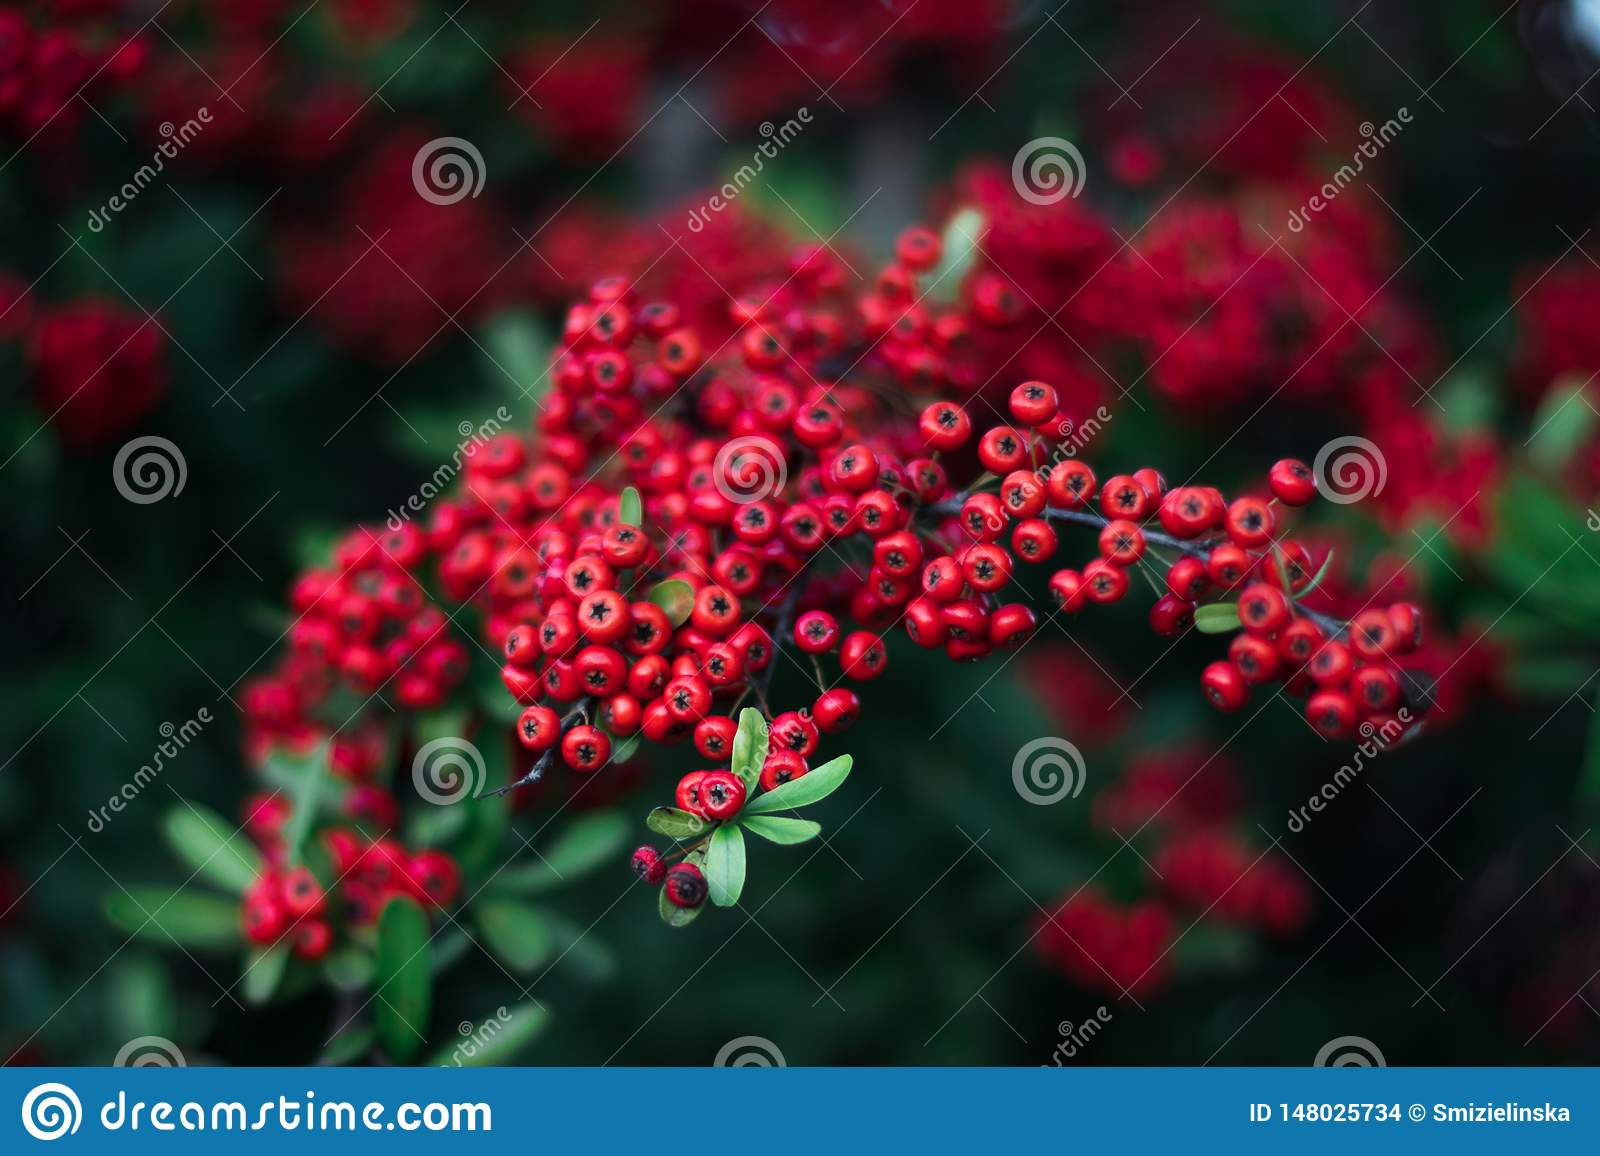 Mohave Pyracantha Firethorn - red berries green bush